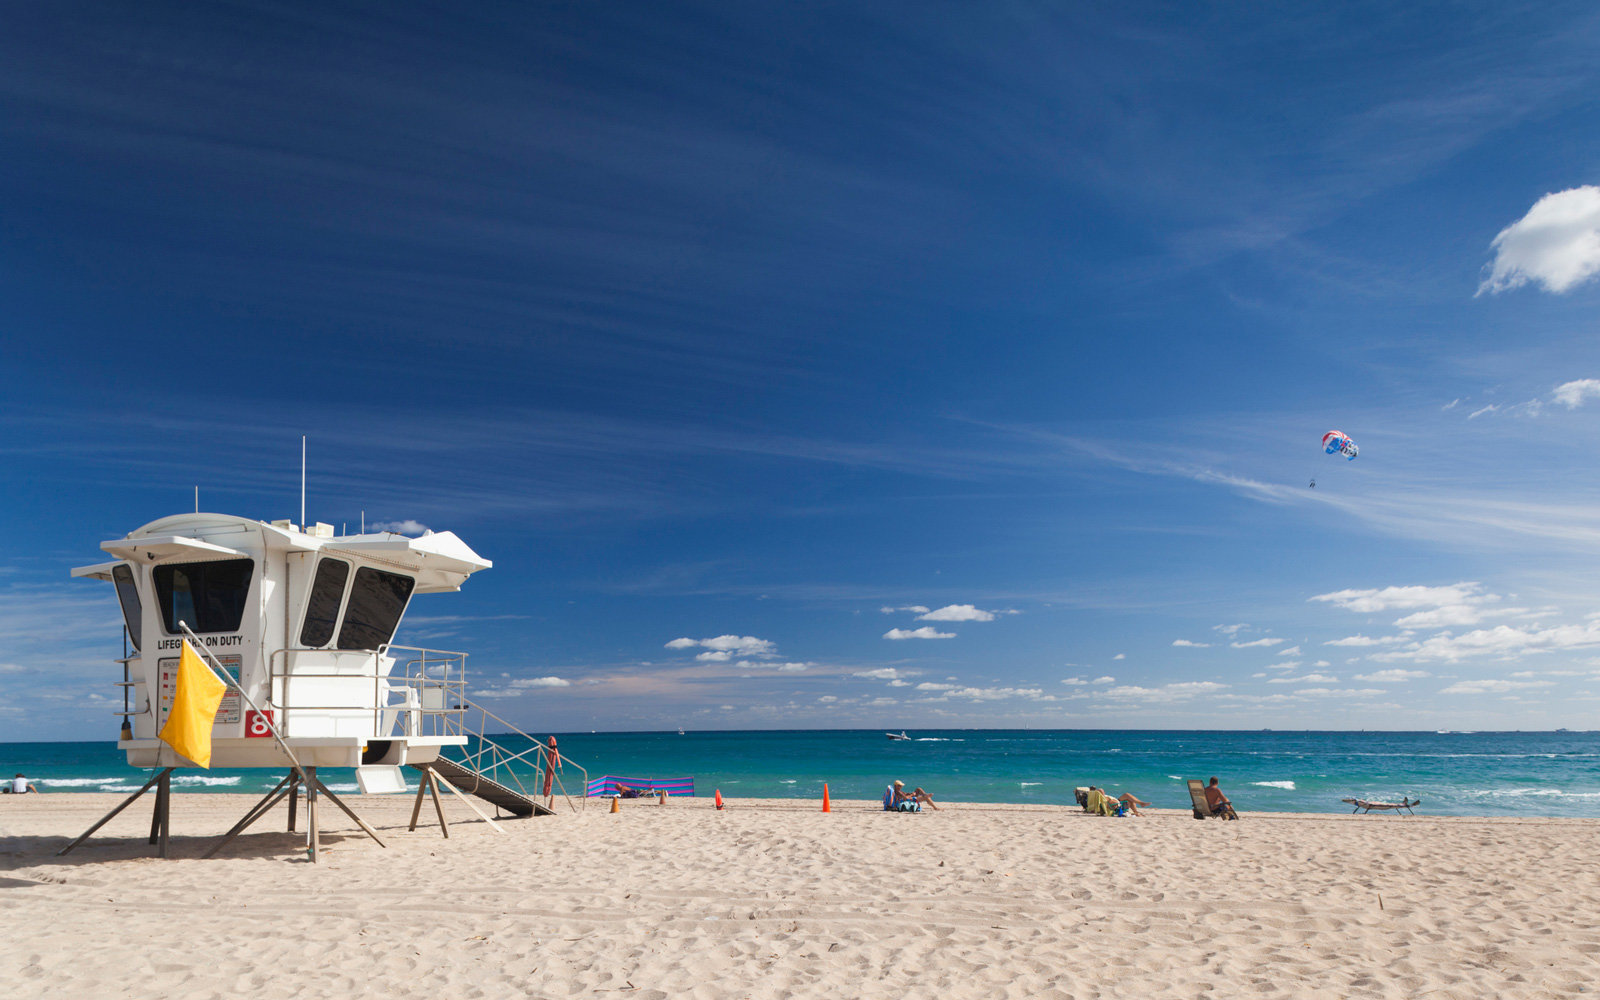 Jetblue sale has cheap flights to warm weather